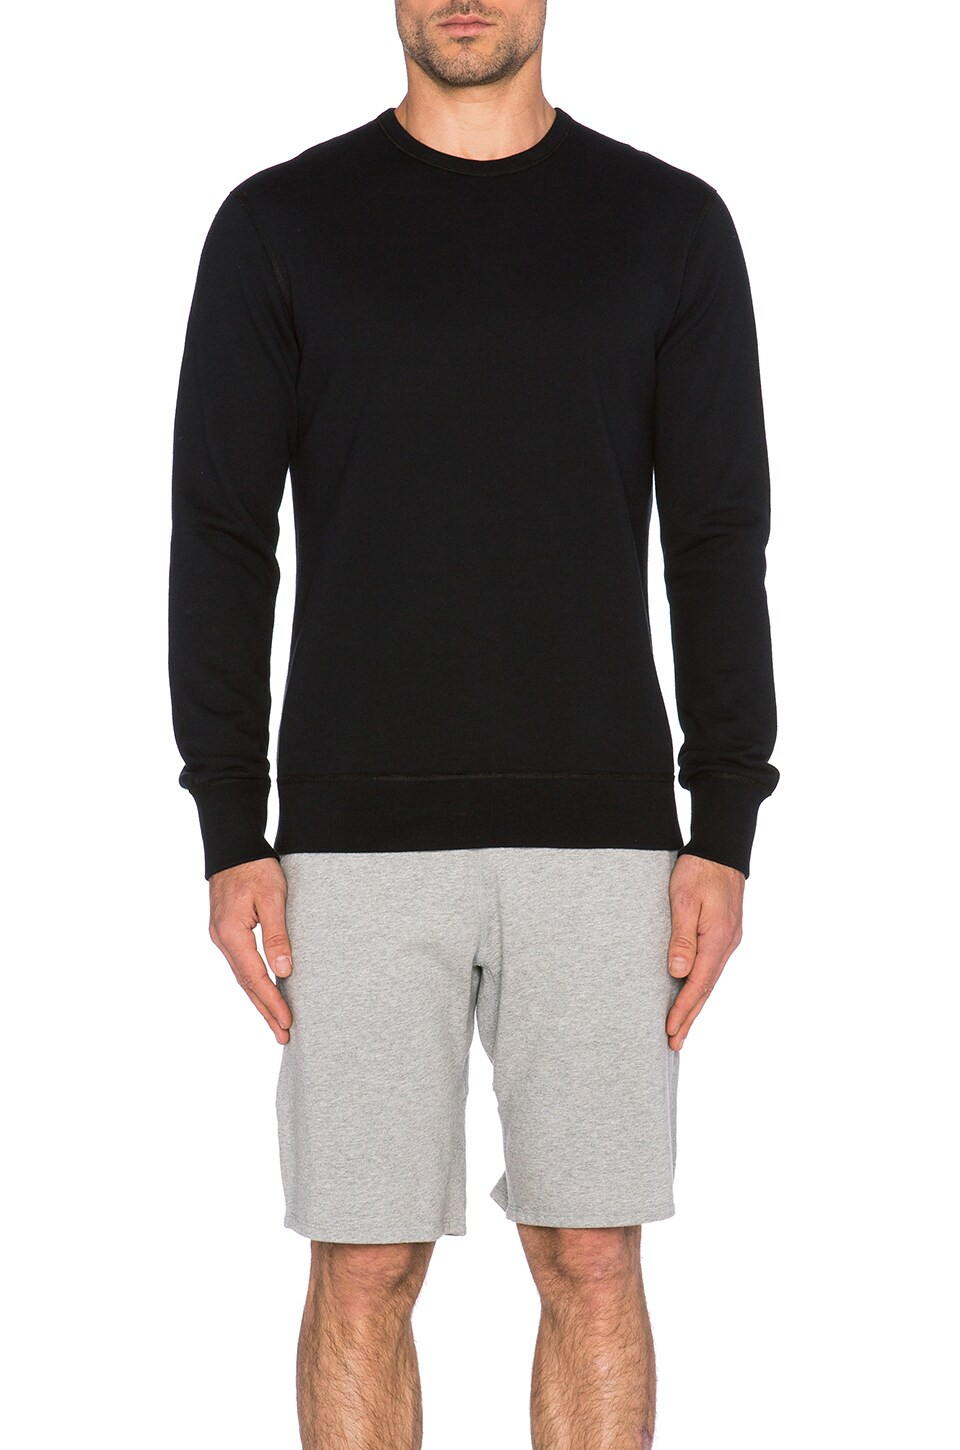 Core Crewneck by Reigning Champ